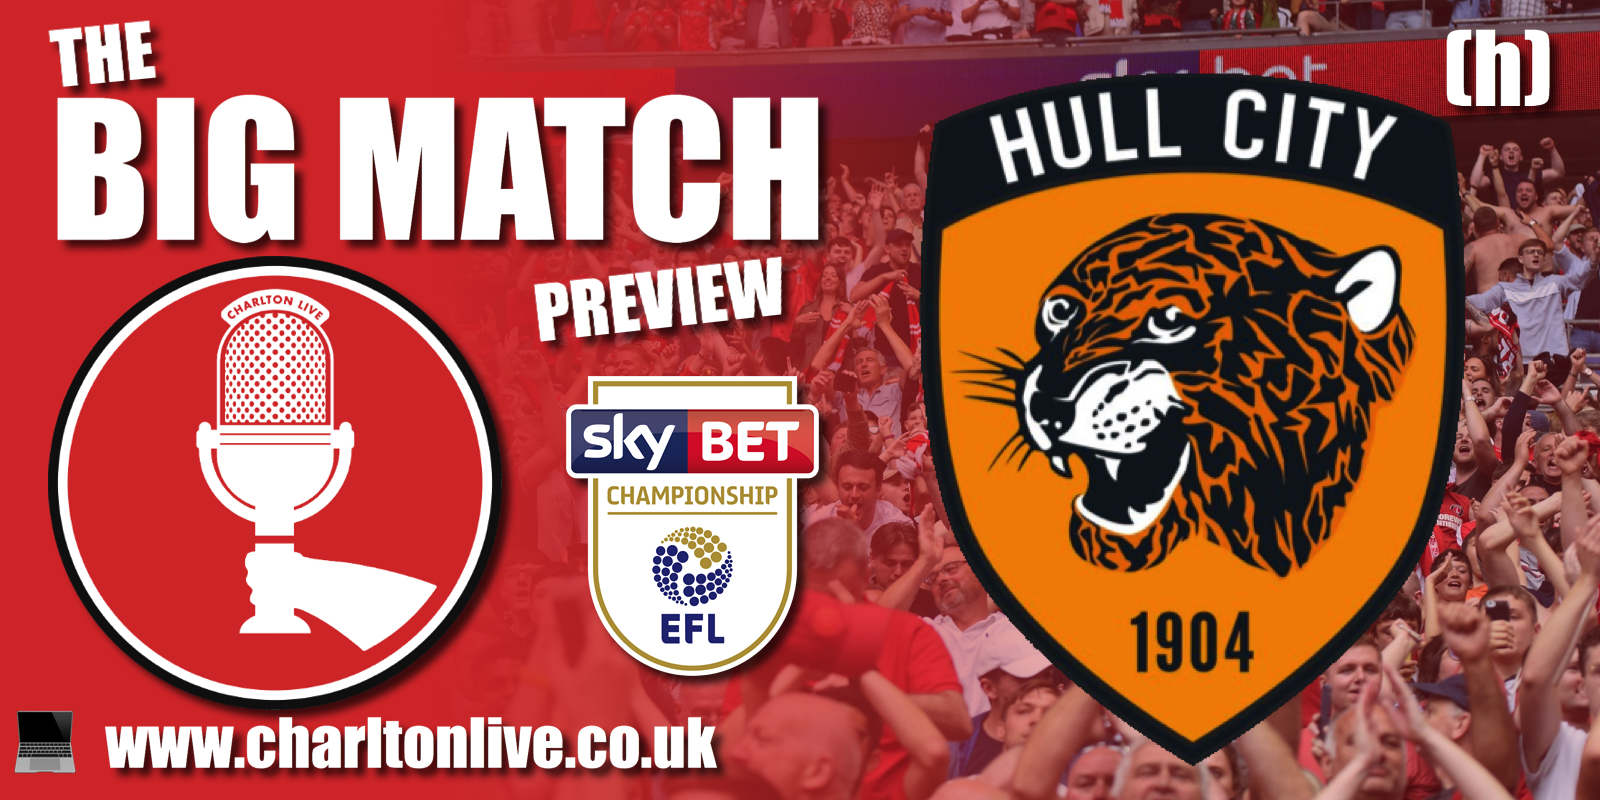 Join Louis Mendez and Tom Wallin as theylook back at the home defeat against Huddersfield and ahead to tomorrow's game with Hull City. They hear […]